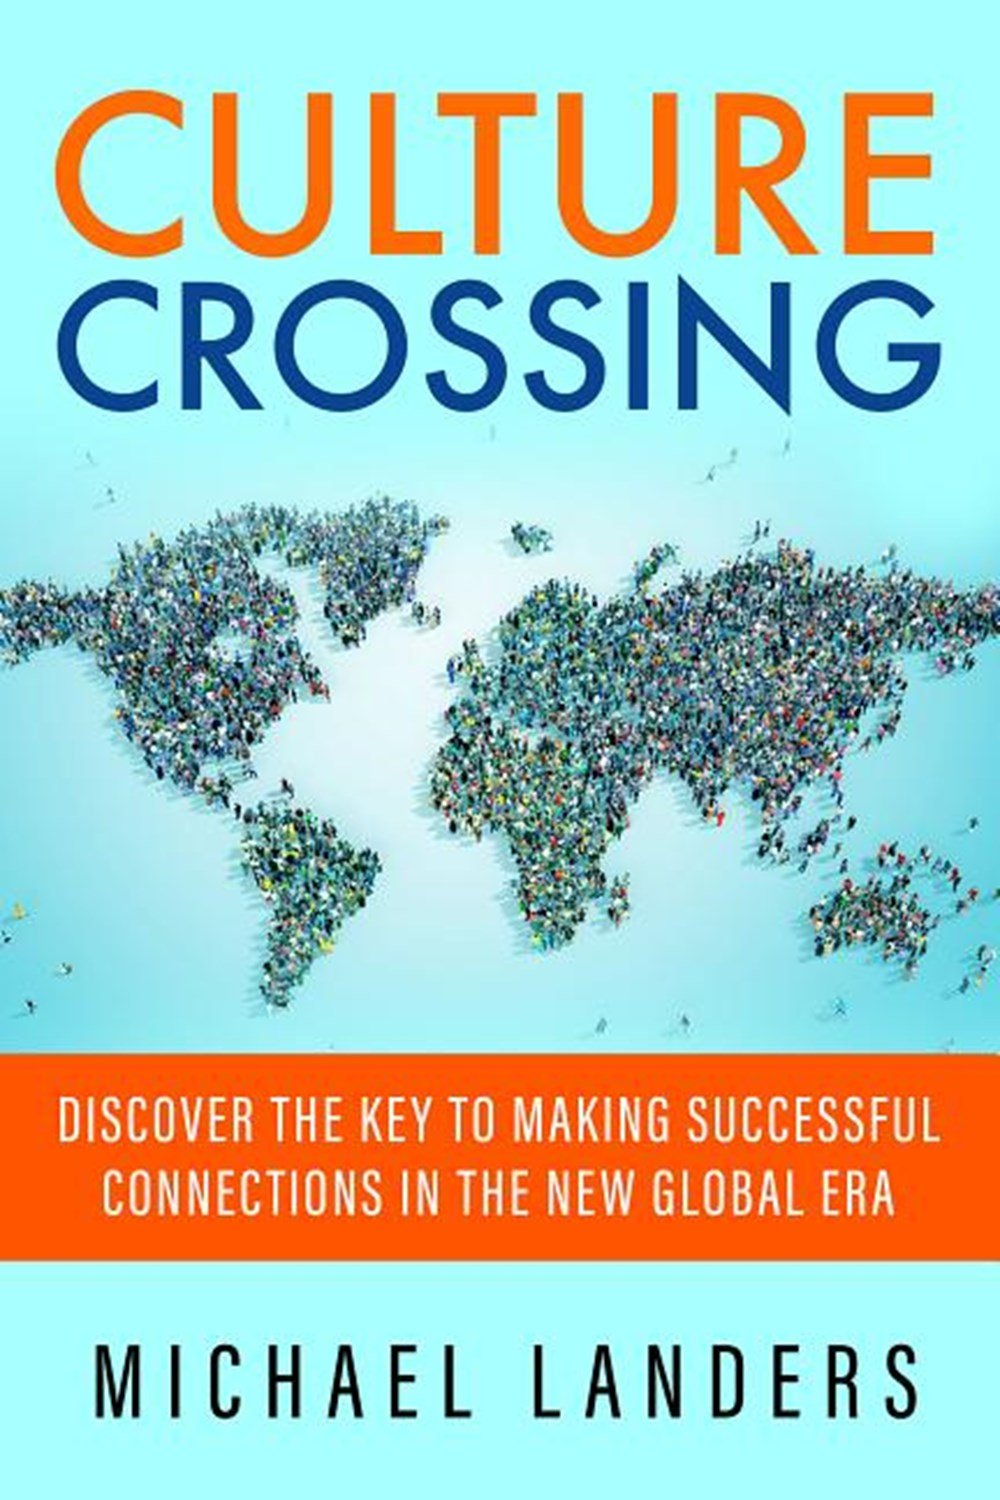 Culture Crossing Discover the Key to Making Successful Connections in the New Global Era